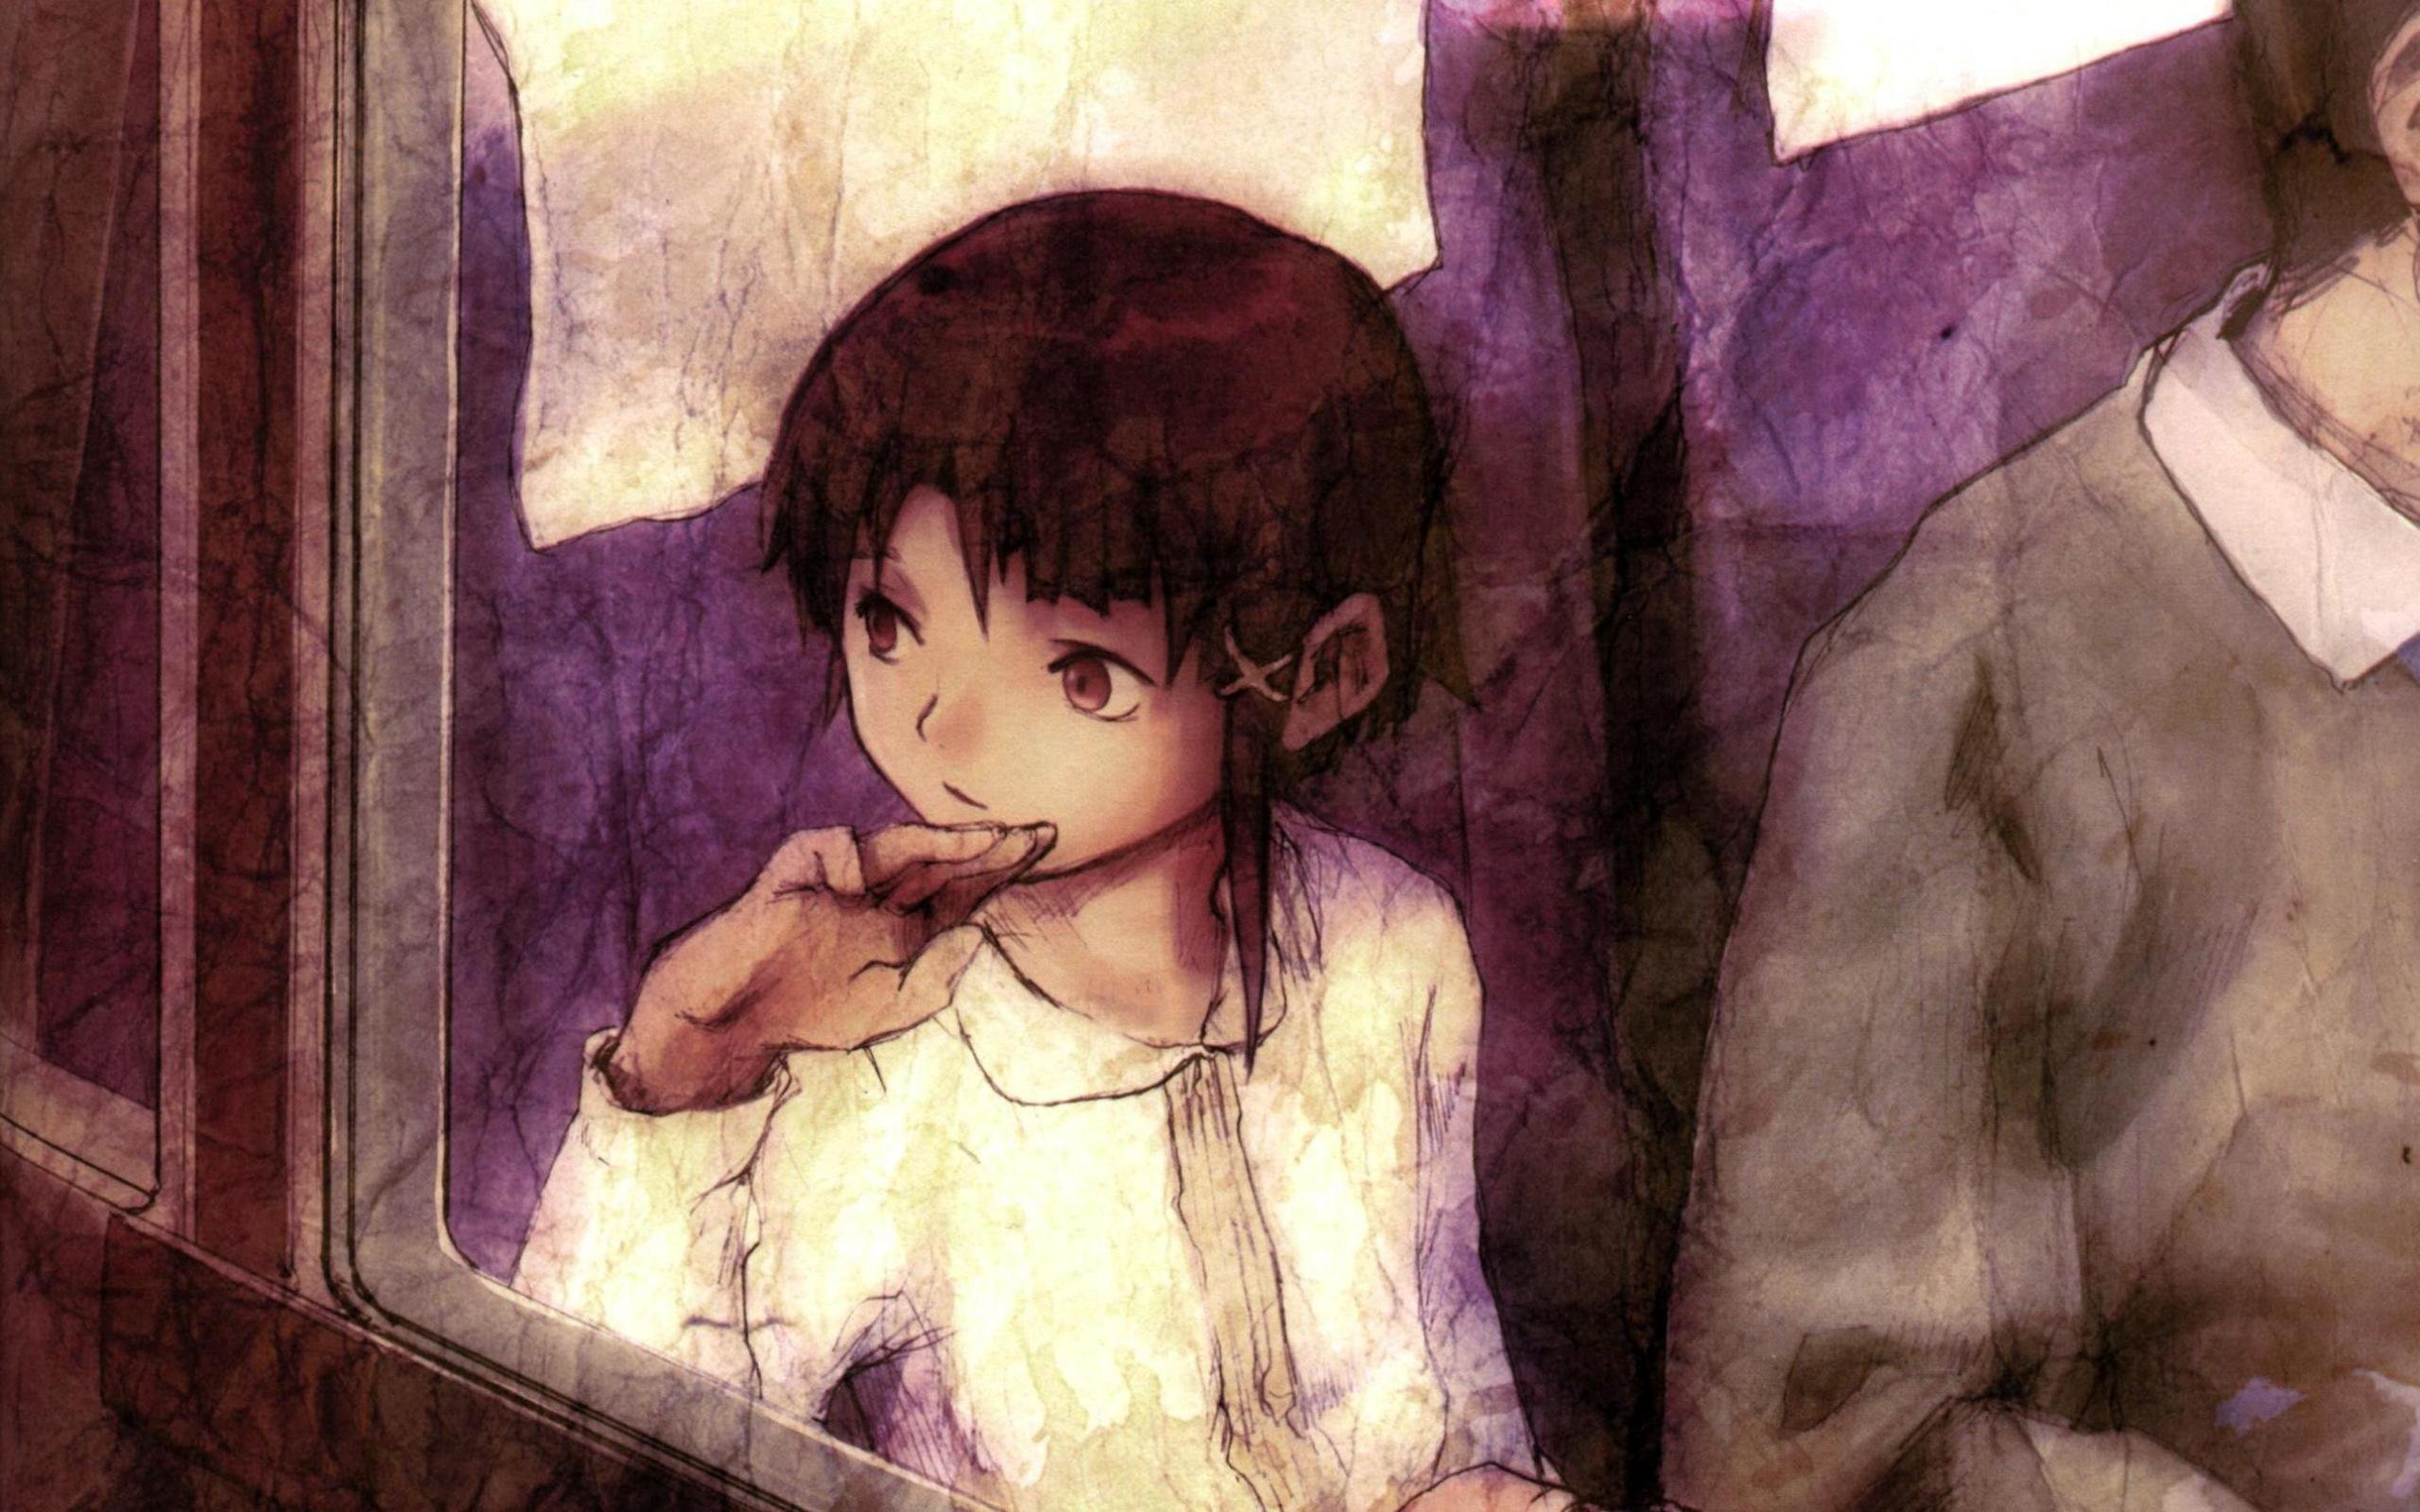 Free download Serial Experiments Lain wallpaper ID:127915 hd 2560x1600 for computer